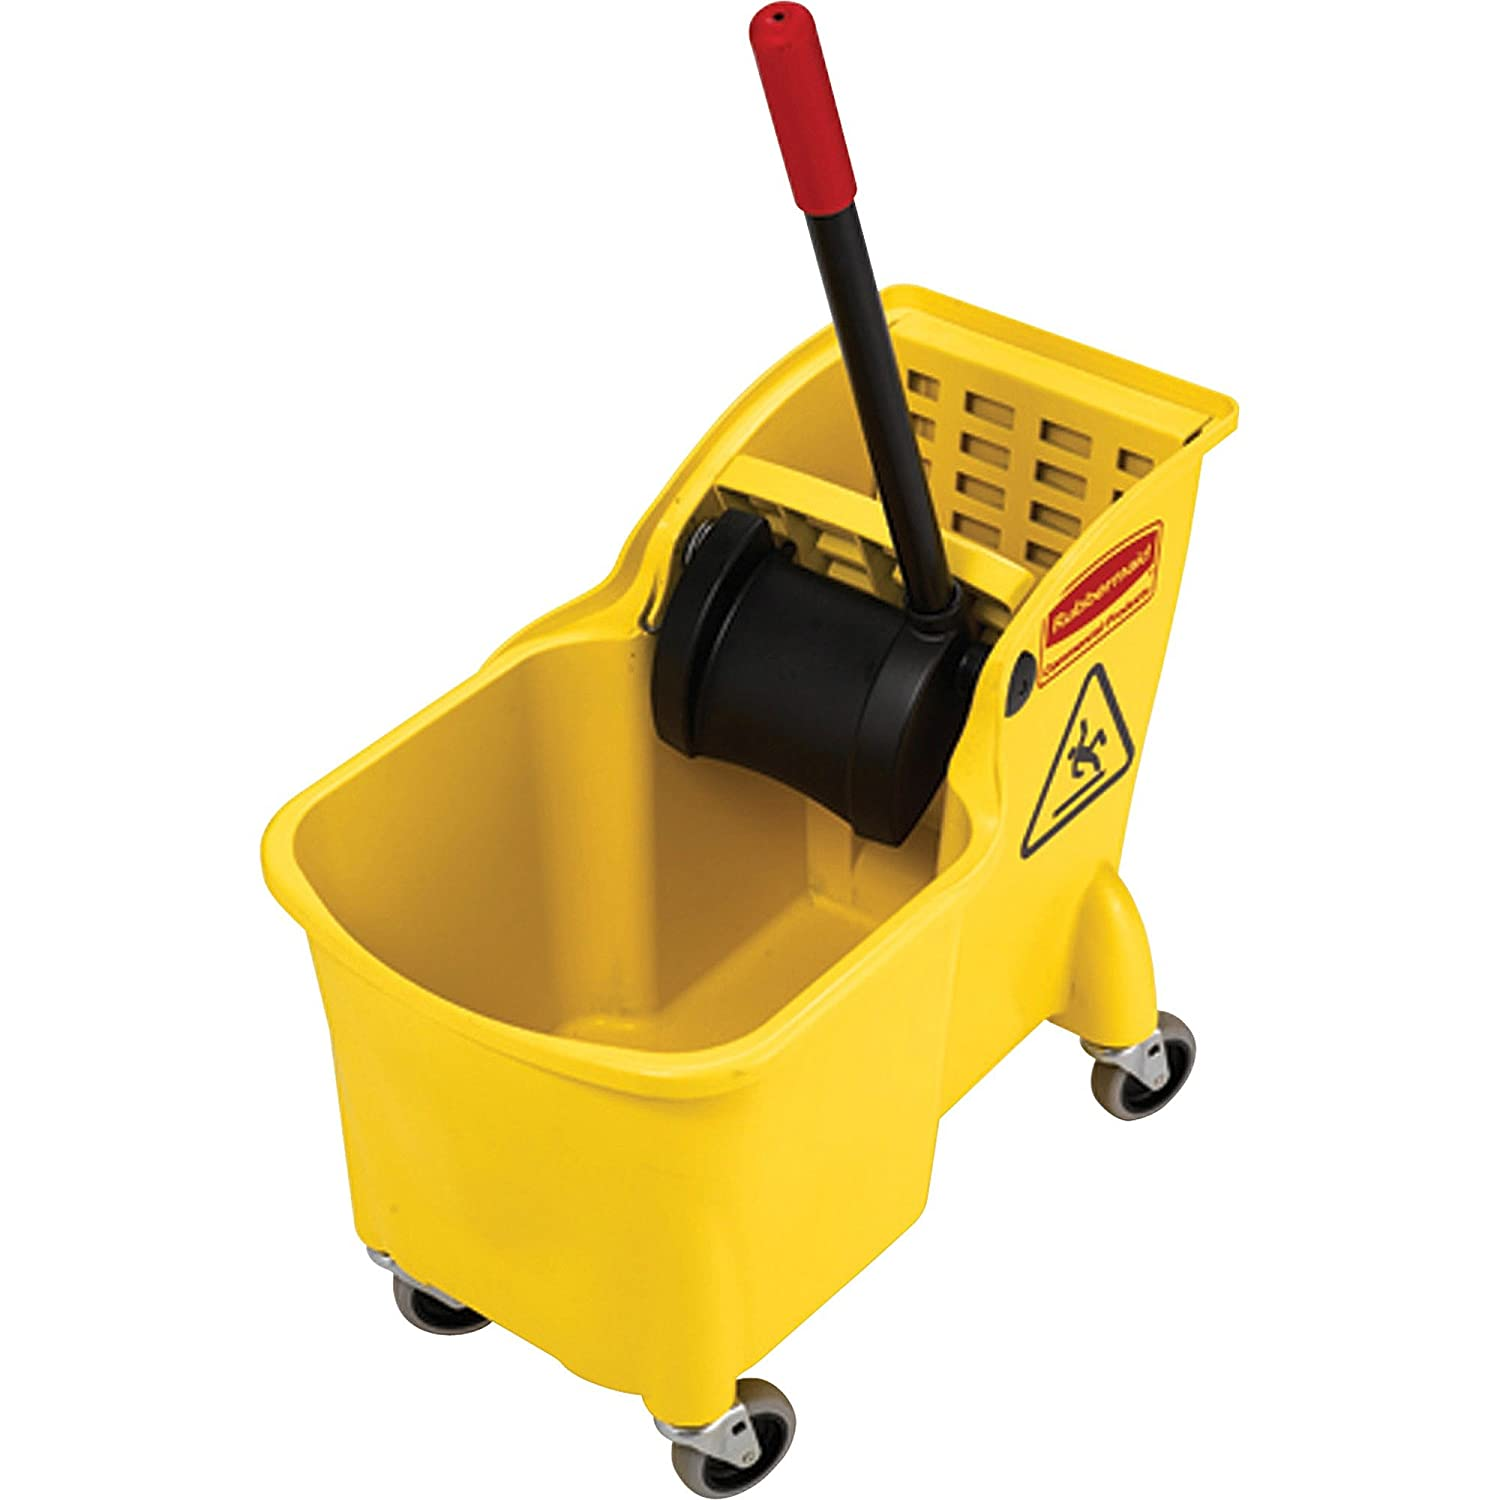 rcp738000yl Rubbermaid Commercial製品Mopバケット組み合わせ、31。。。 B006RXQ5EE